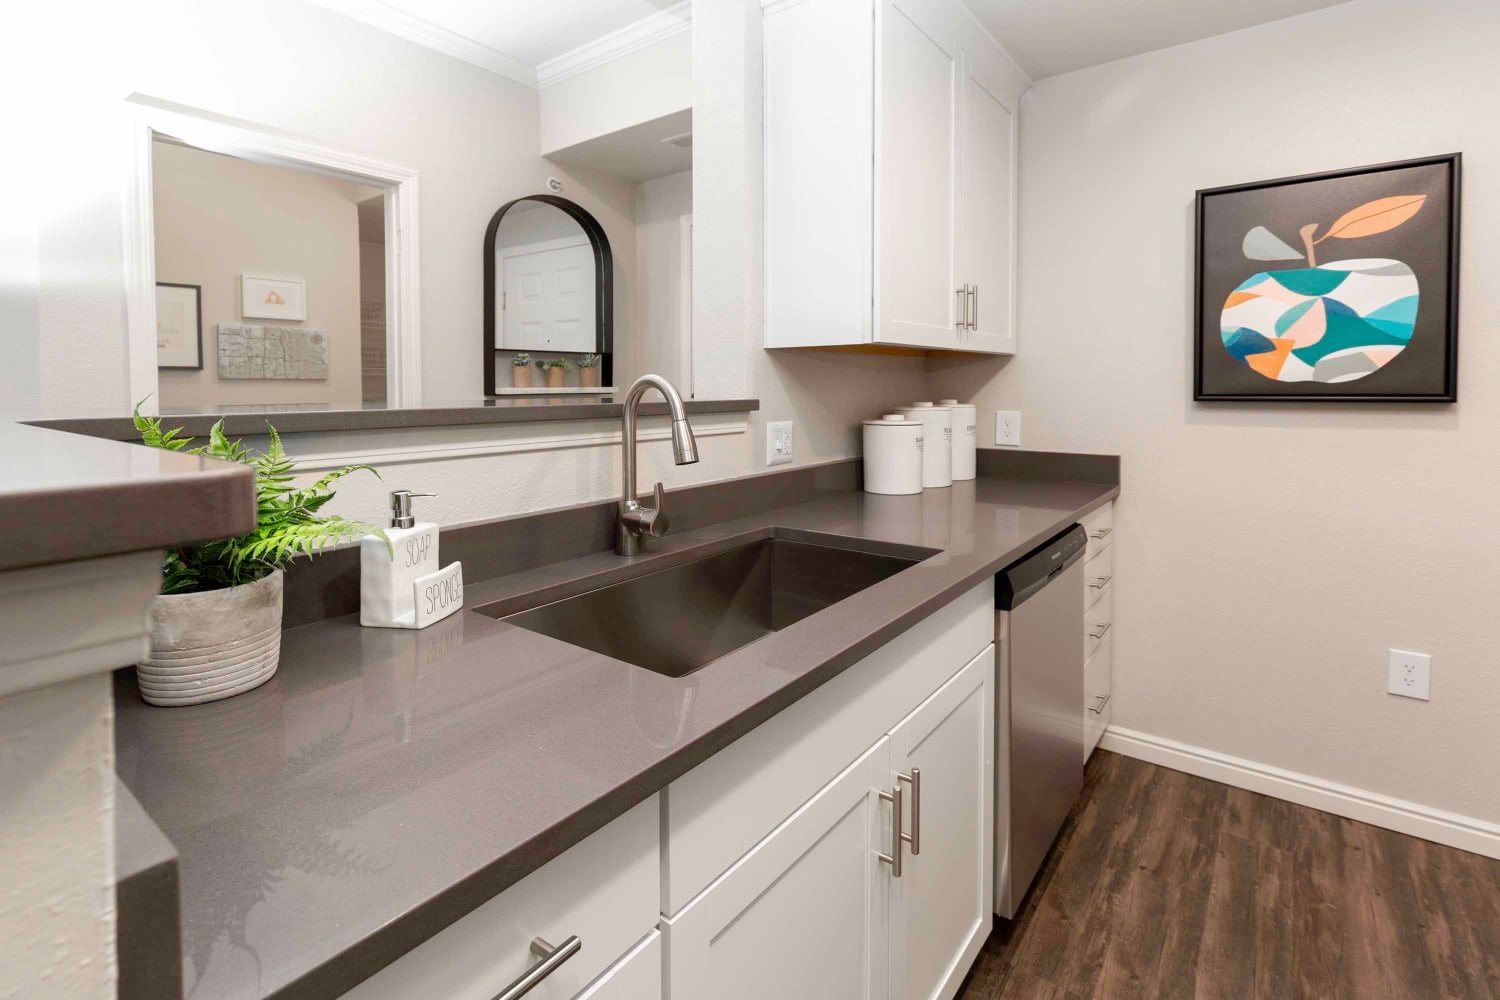 Updated kitchen at Irving Schoolhouse Apartments in Salt Lake City, Utah